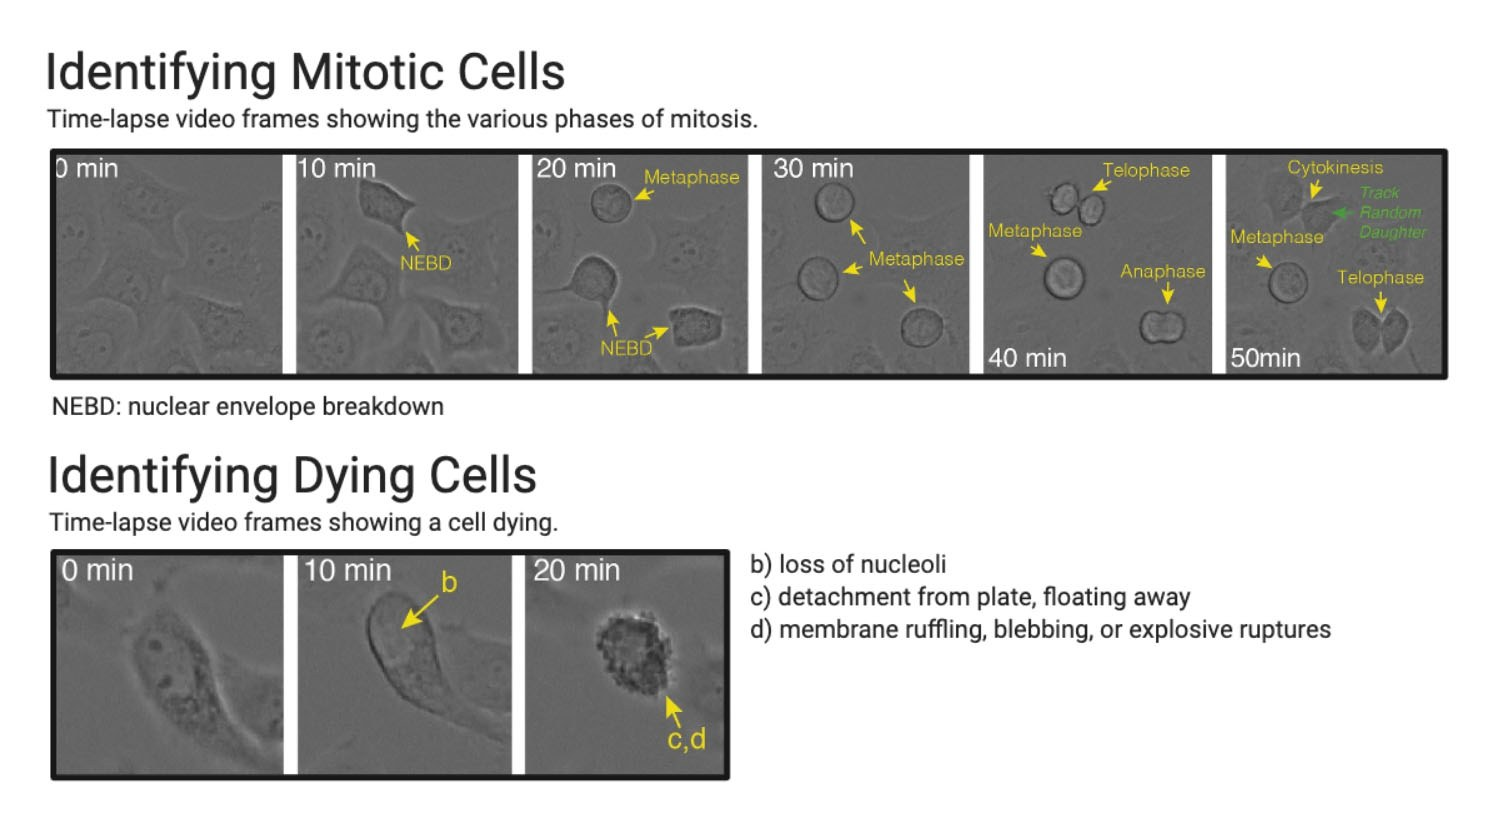 visual analysis of the cell-cycle using label-free microscopy